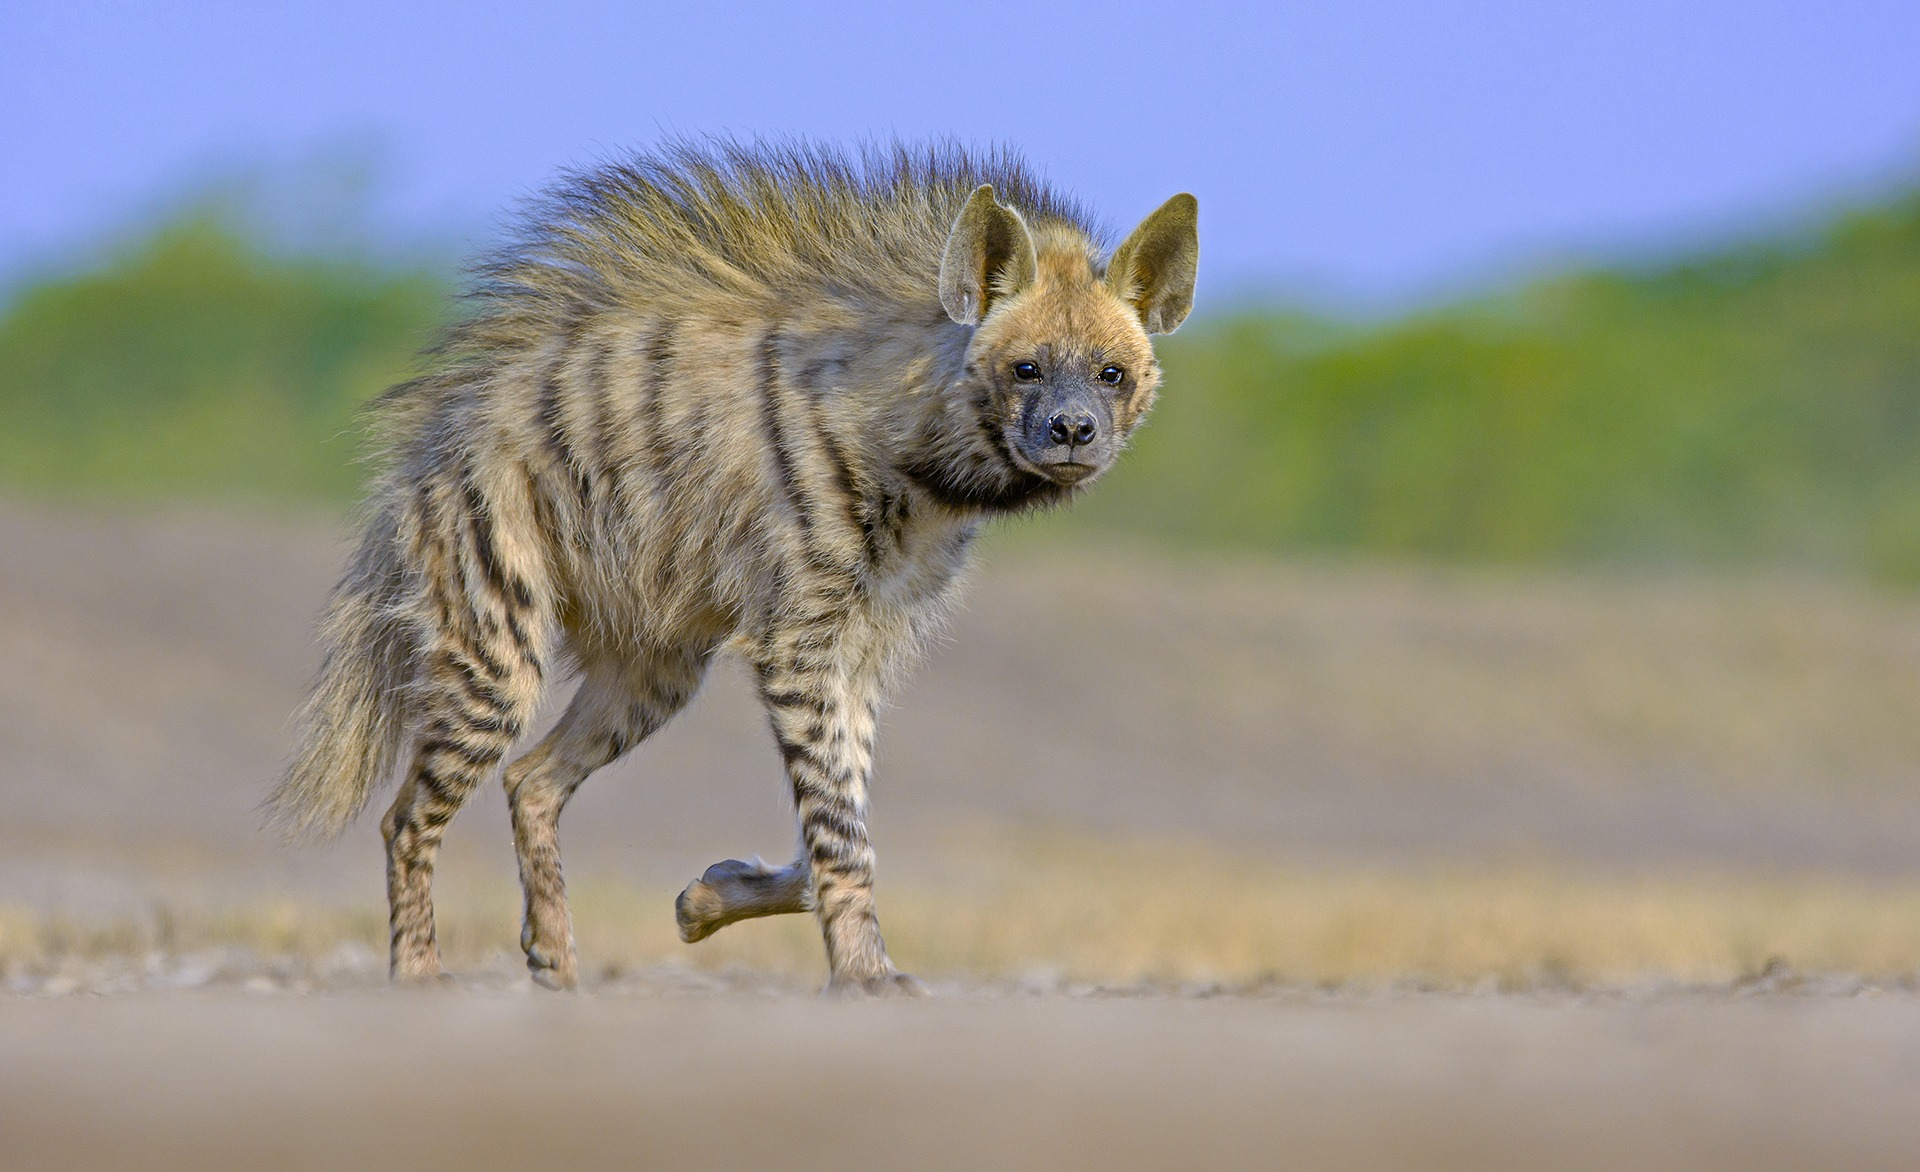 The jungle cat (top) and striped hyena (above) are both formidable land carnivores in the Little Rann of Kutch. The jungle cat is considered largely solitary while hyenas are more social in nature.